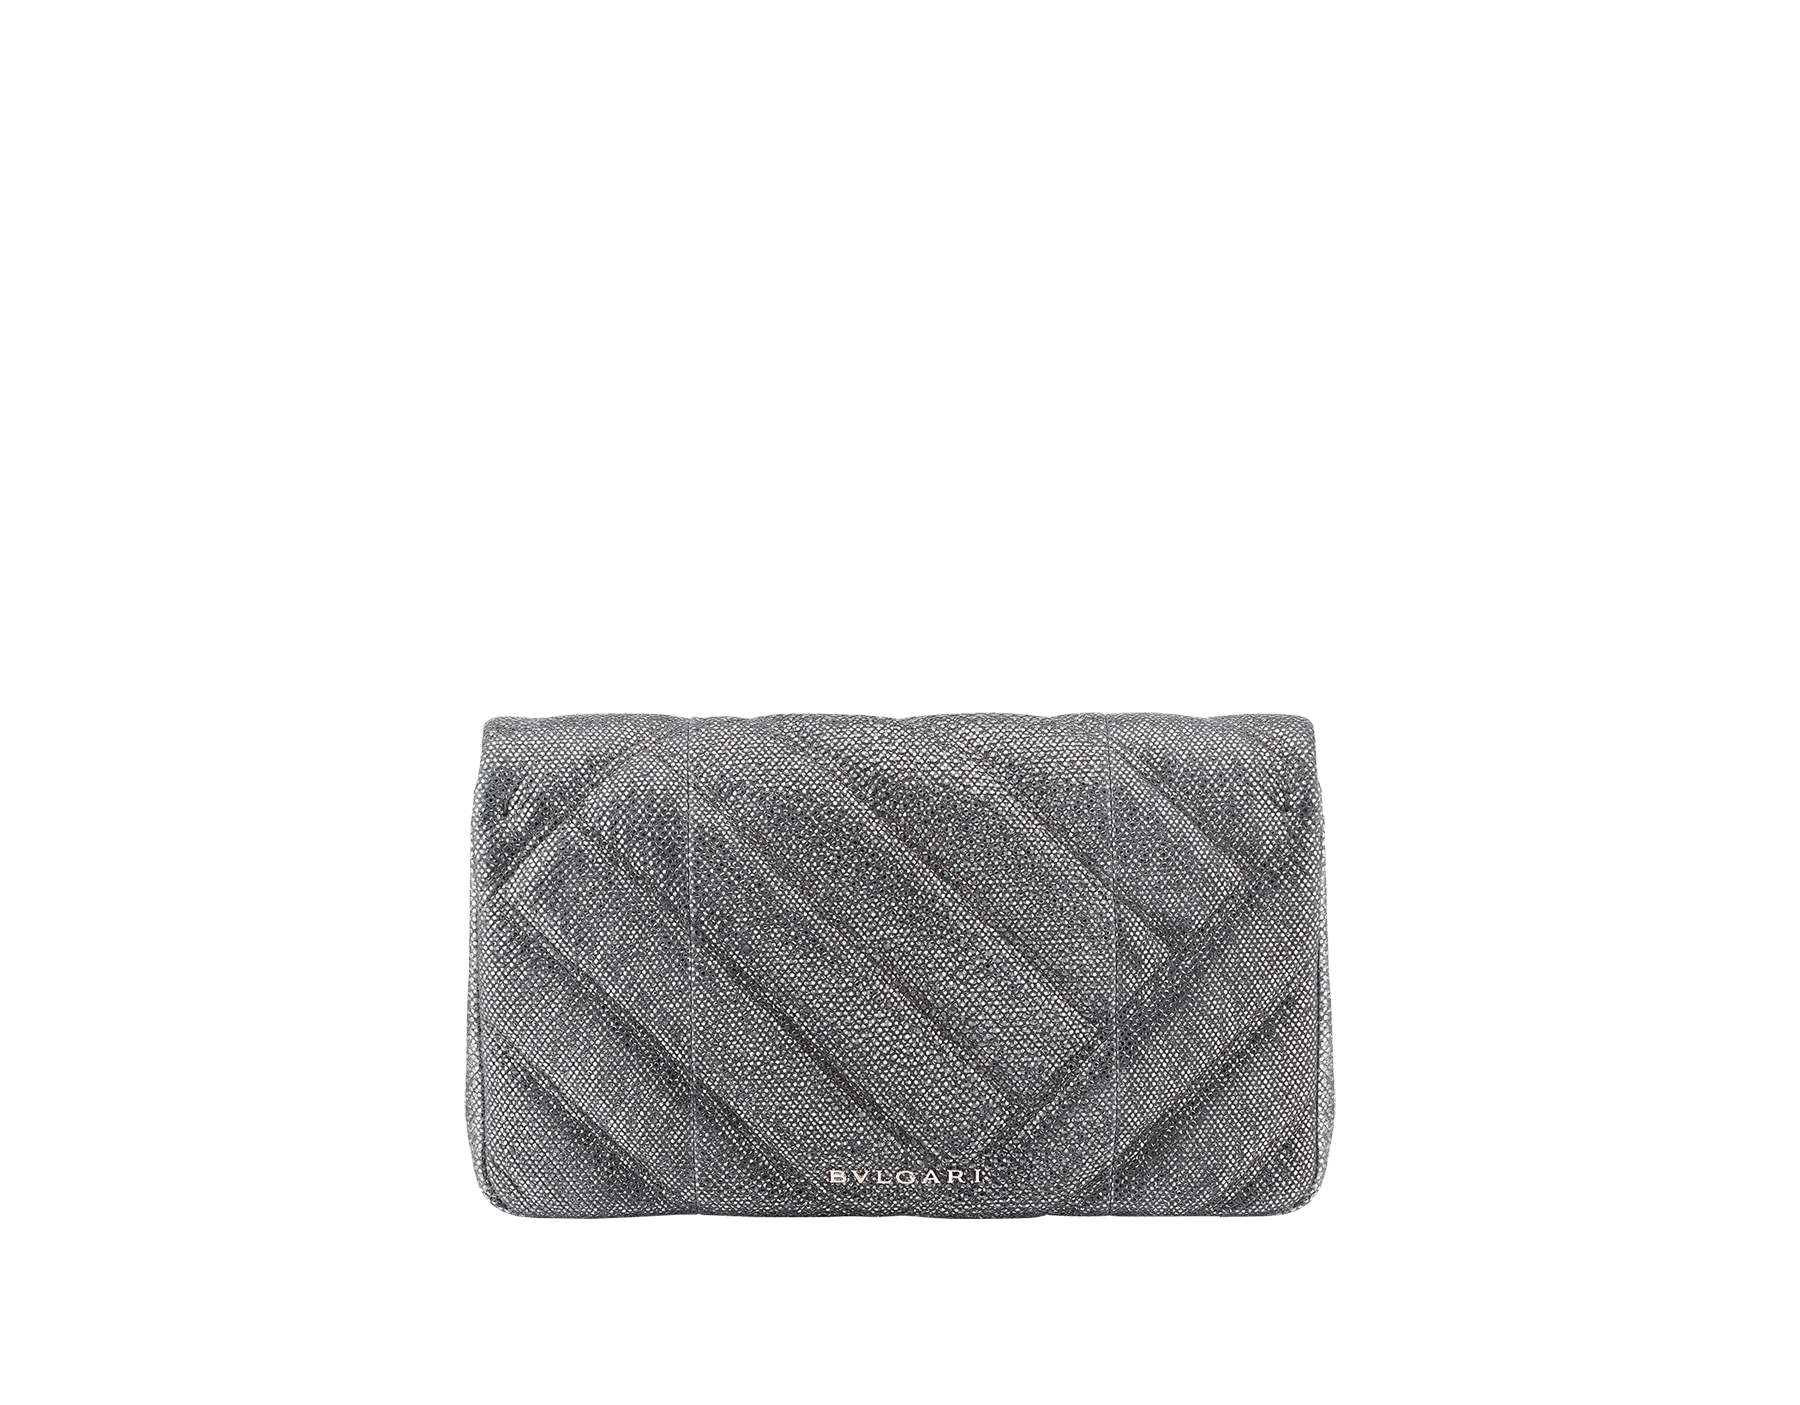 Serpenti Cabochon clutch bag in charcoal diamond metallic karung skin, with a graphic motif. Brass light gold plated tempting snake head closure in black and glitter charcoal diamond enamel and black onyx eyes. 289303 image 3